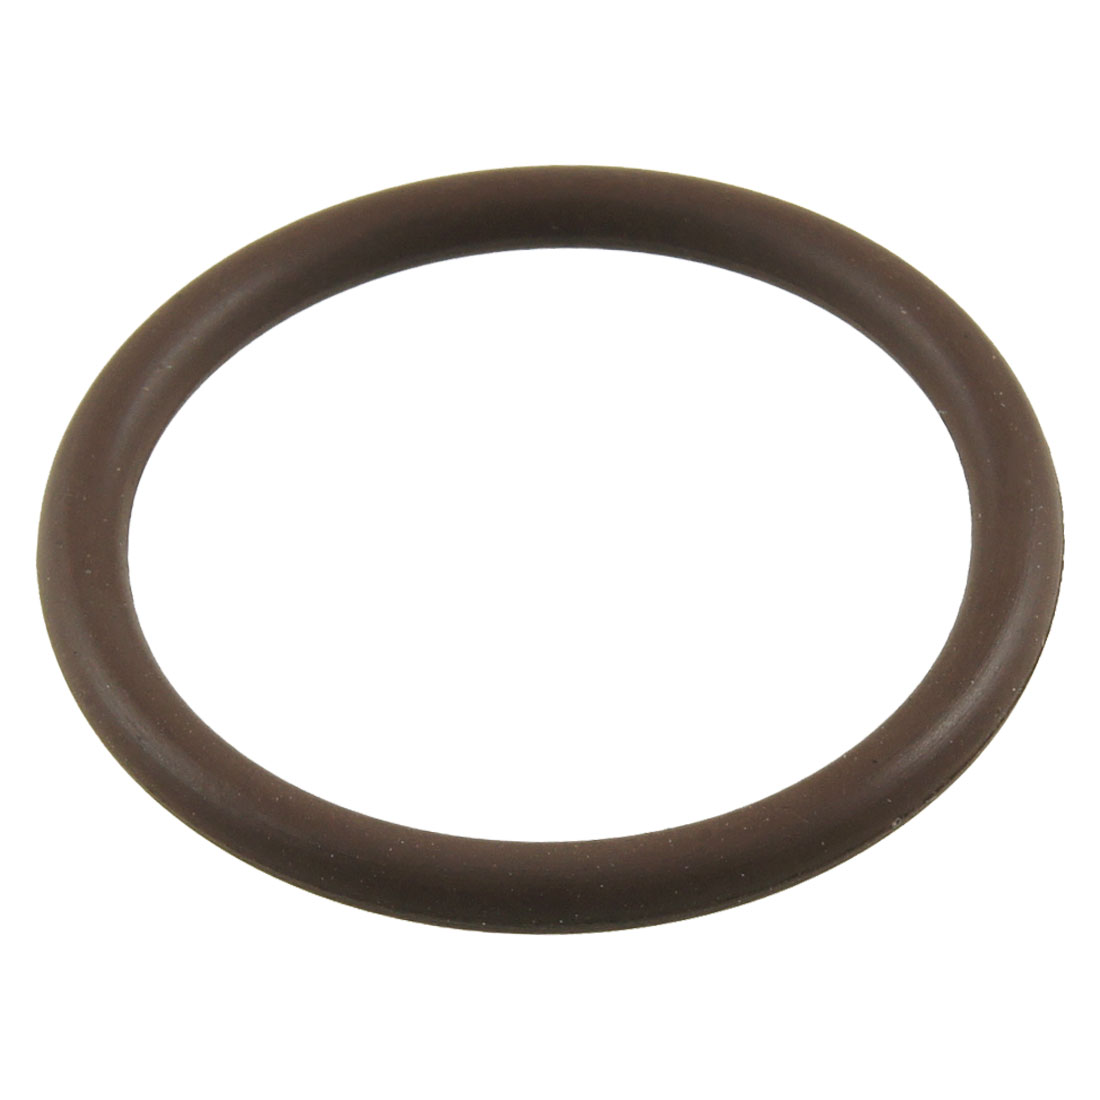 Fluorine Rubber O Ring Oil Sealing Gaskets 34mm x 28mm x 3mm